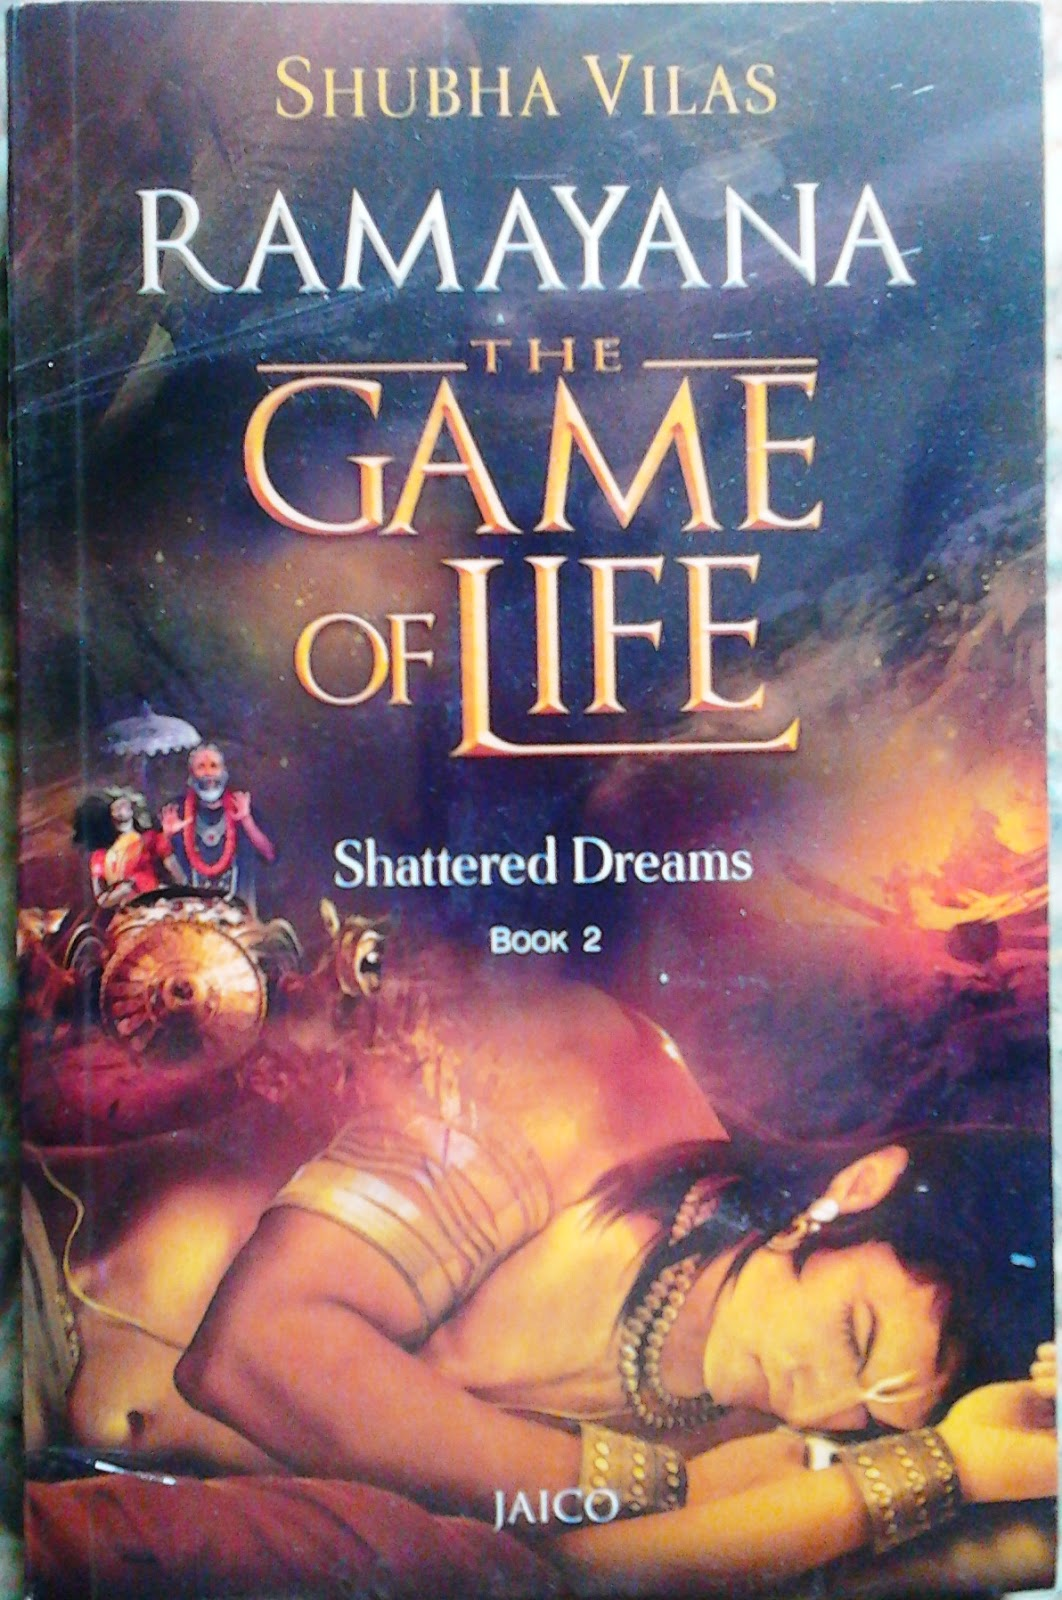 Book Review: The Game of Life - Shattered Dreams